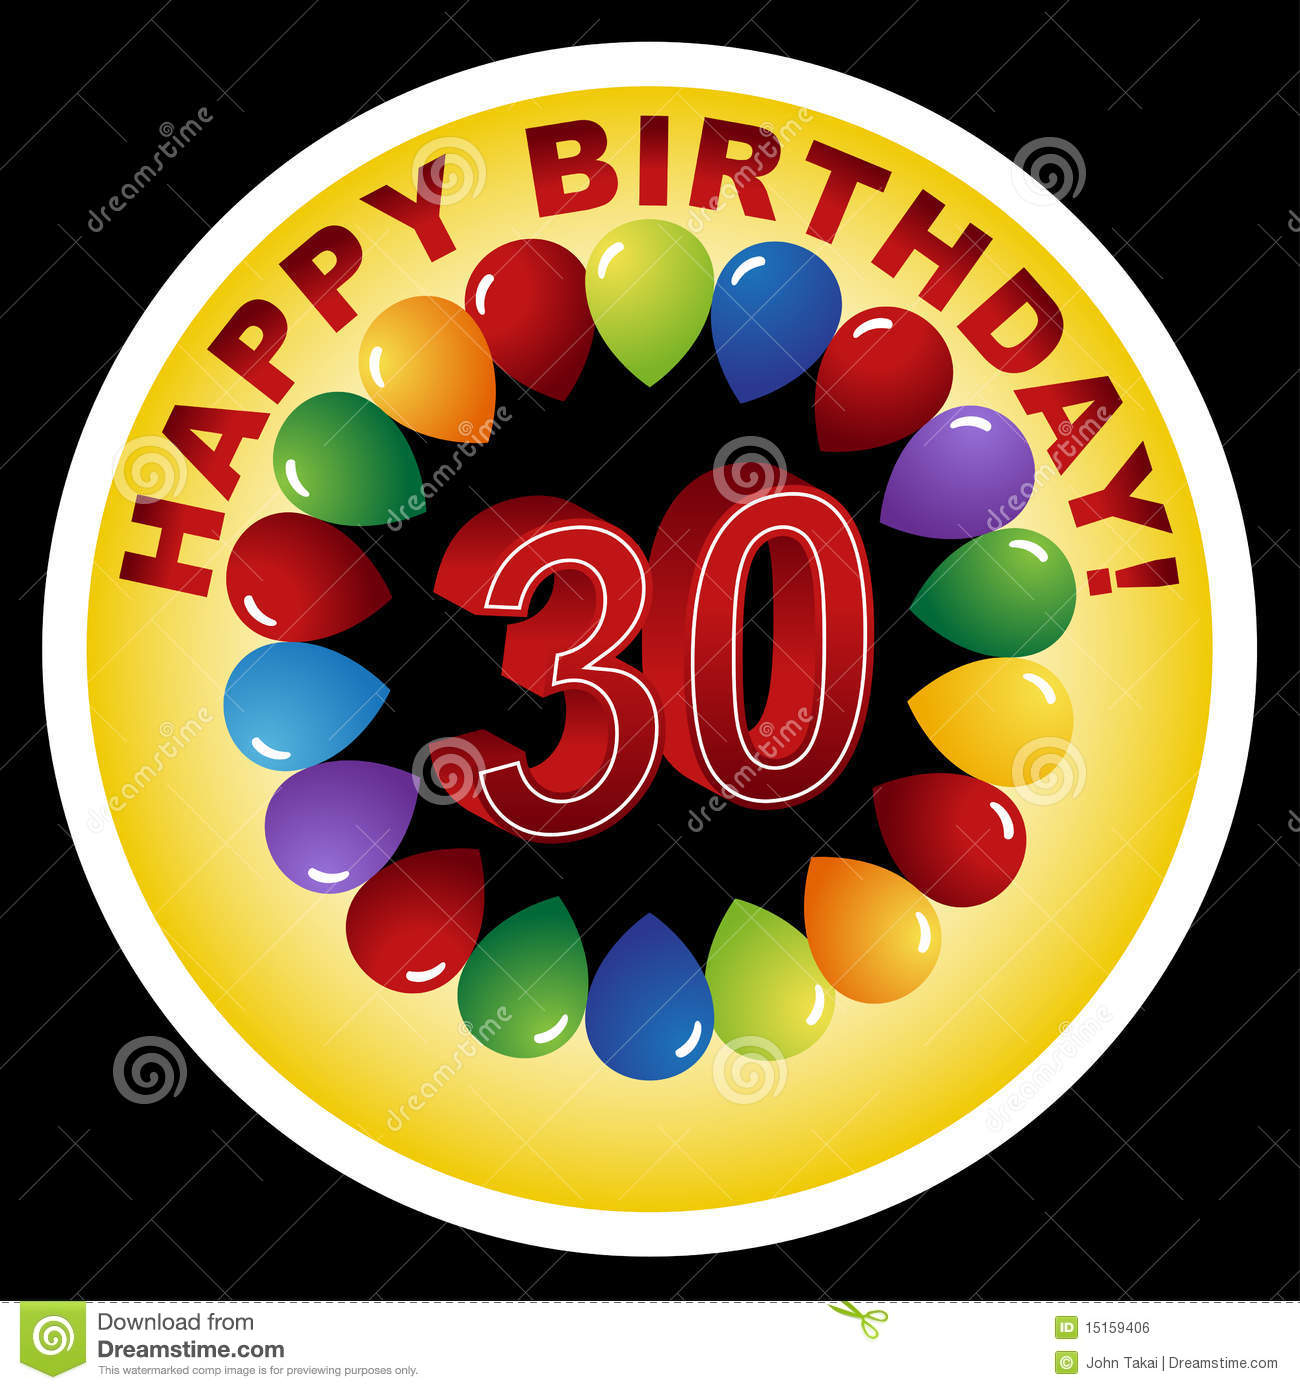 Funny 30th Birthday Clipart - Clipart Kid